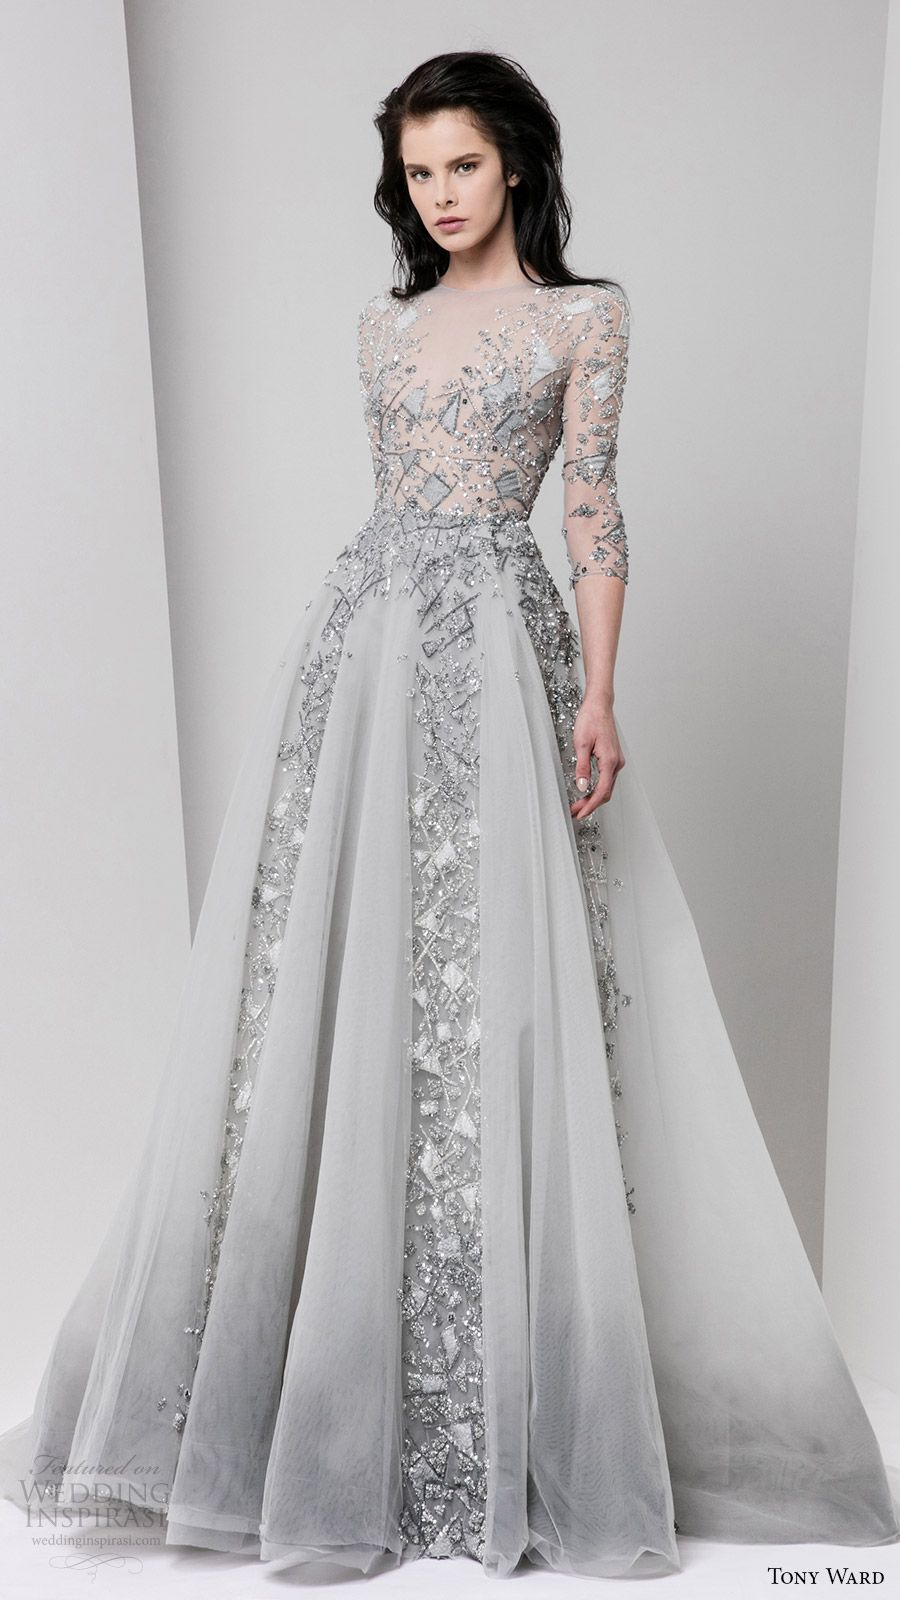 Stunning Tony Ward Fall 2016 Rtw 3 Quarter Sleeves Illusion Bateau Neck A Line Evening Dress Grey Gray Embellished